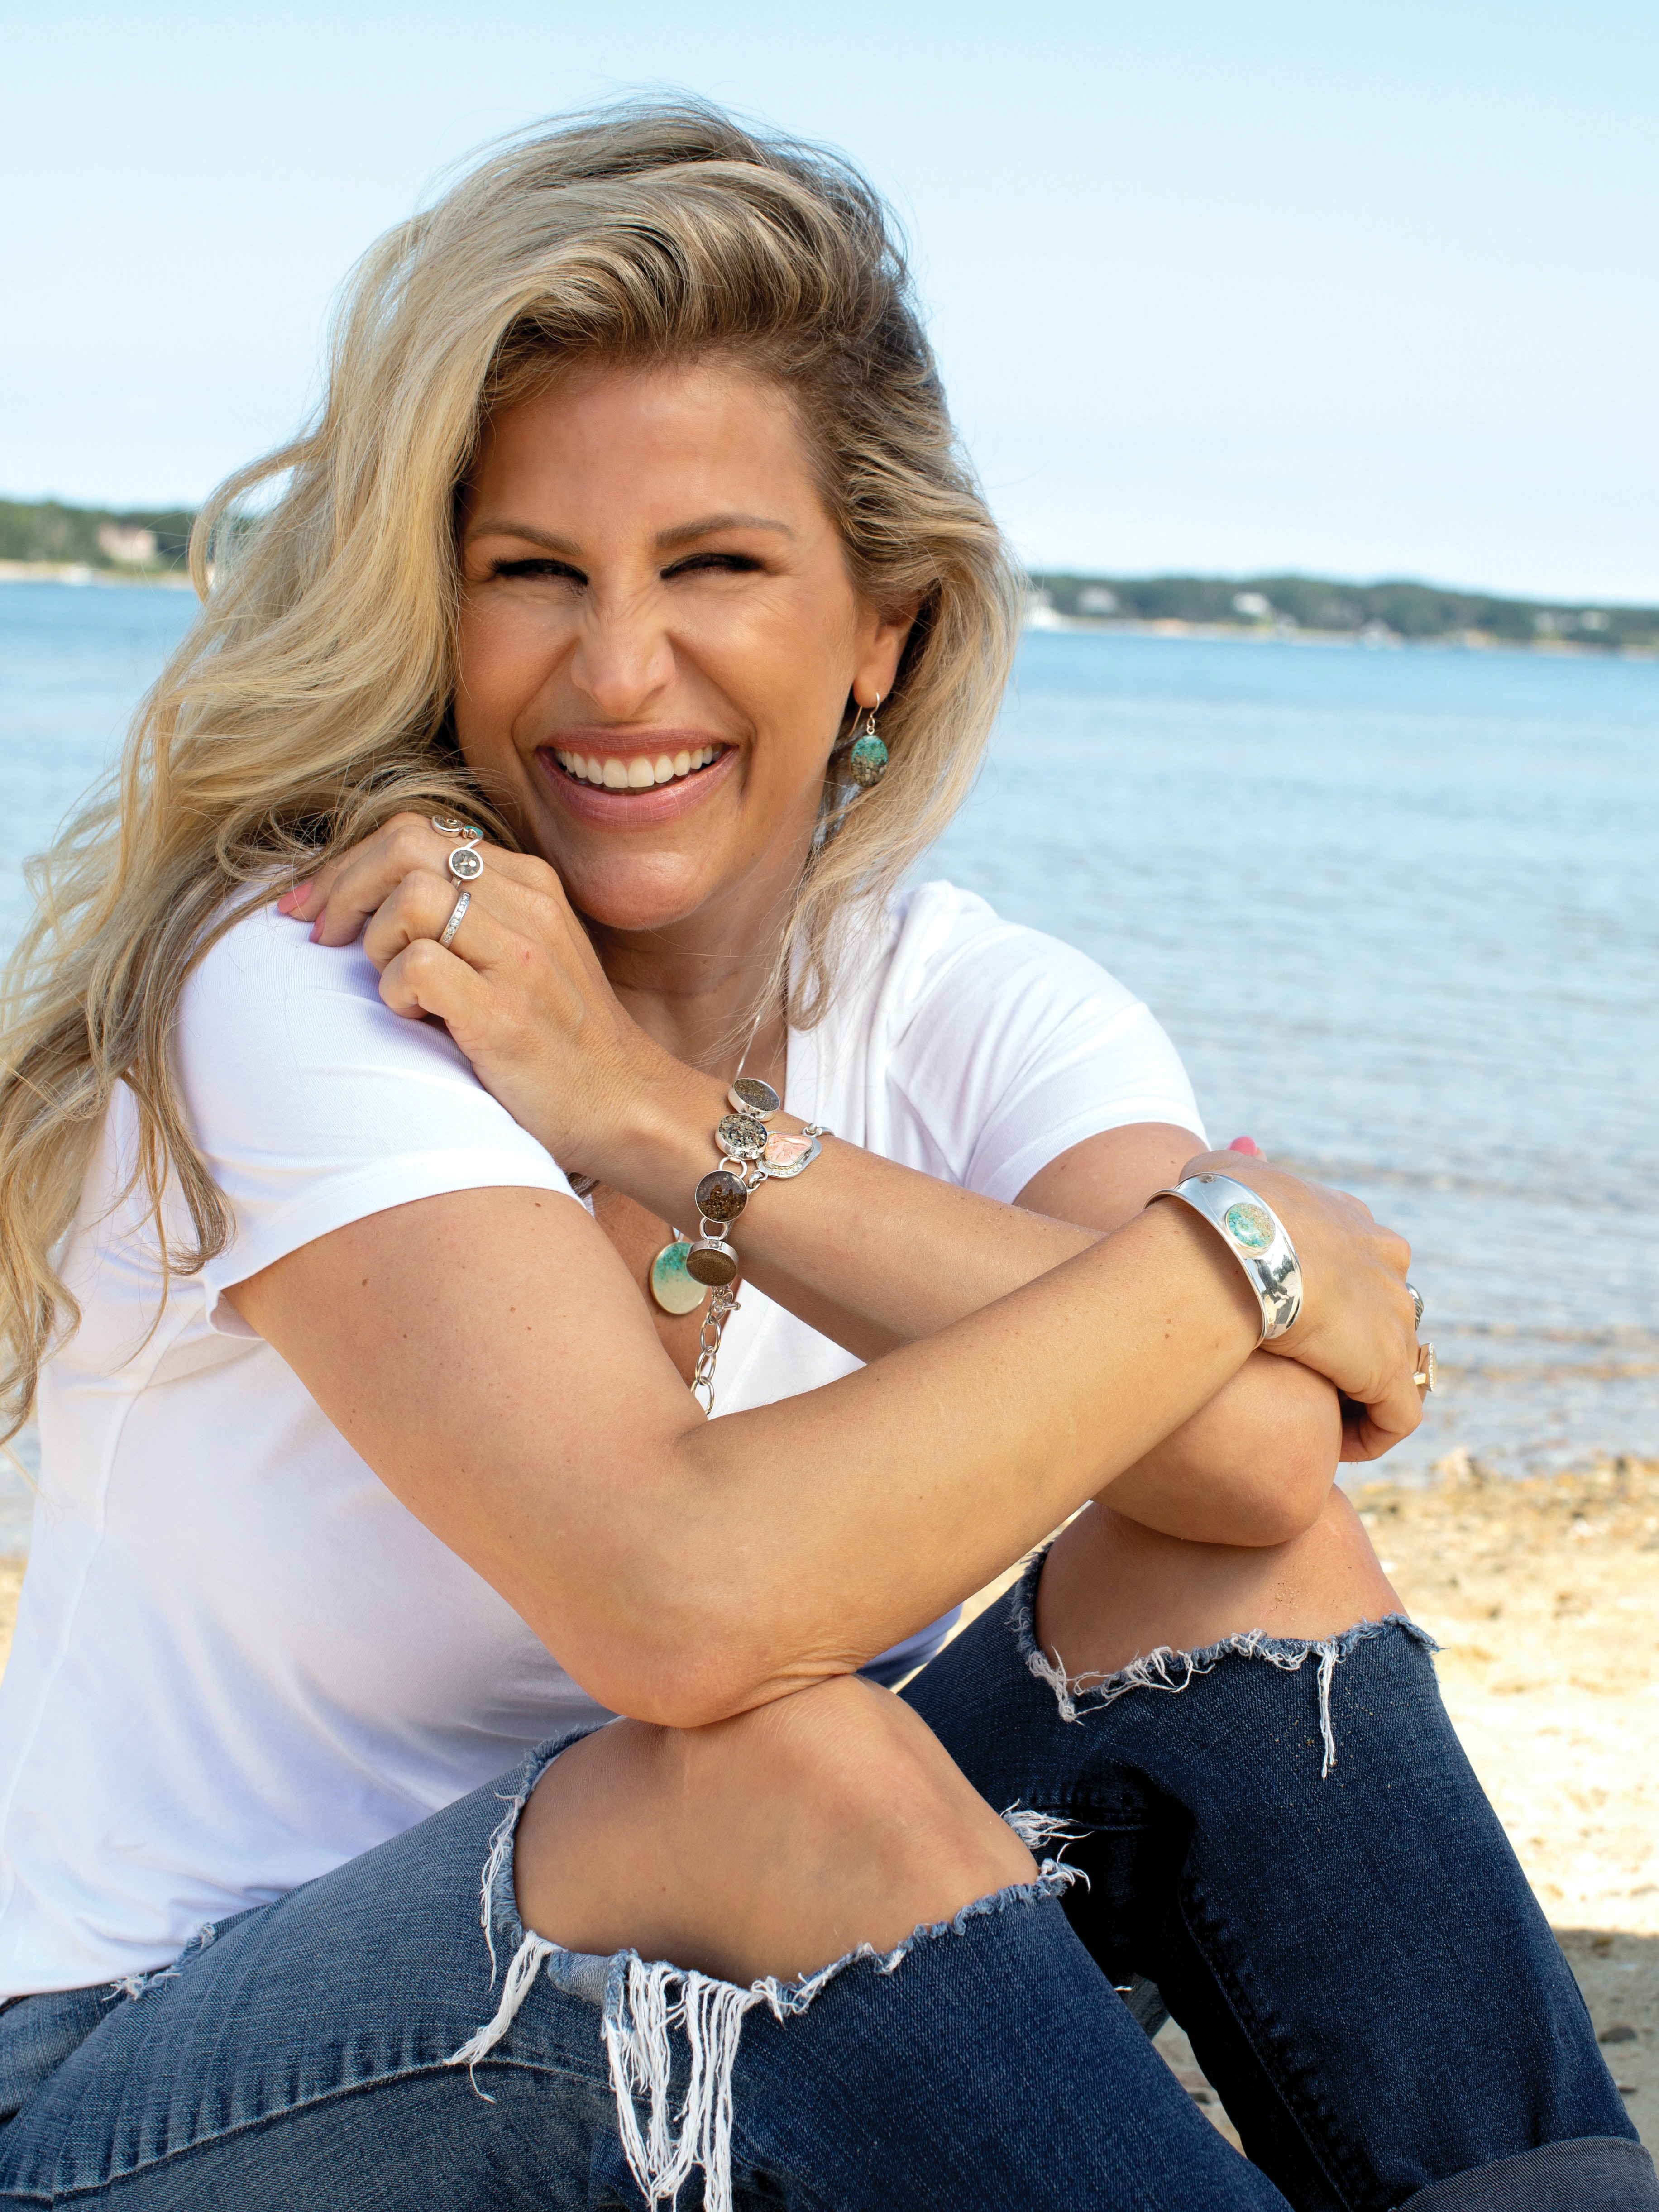 dune jewelry founder Holly Daniels Christensen sitting